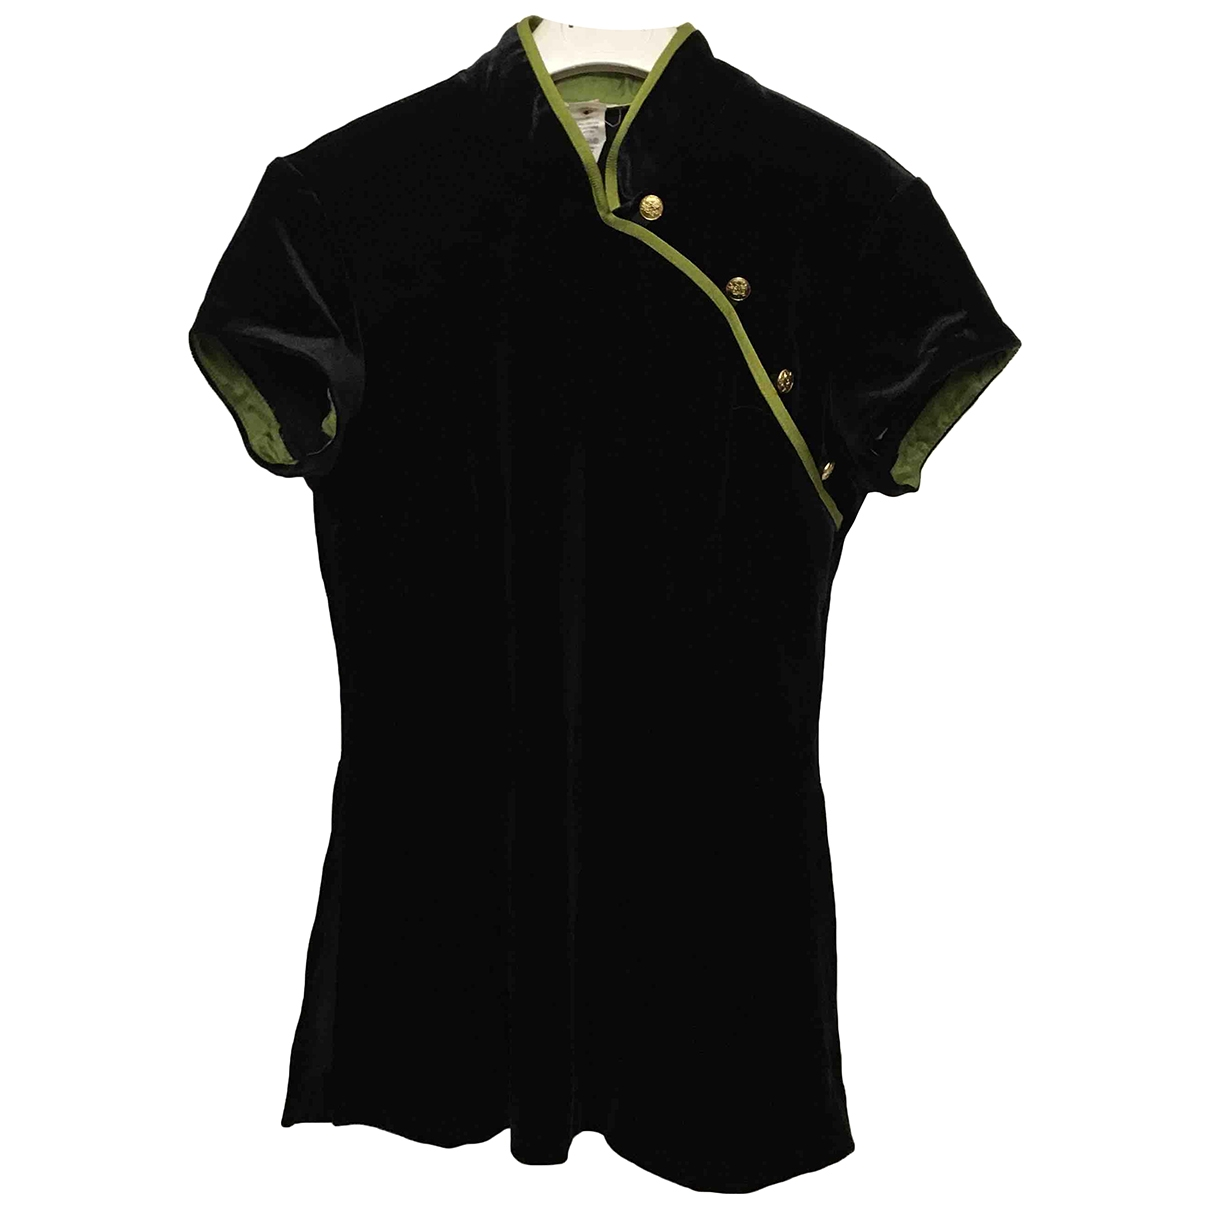 Bonpoint \N Black  top for Kids 14 years - S FR